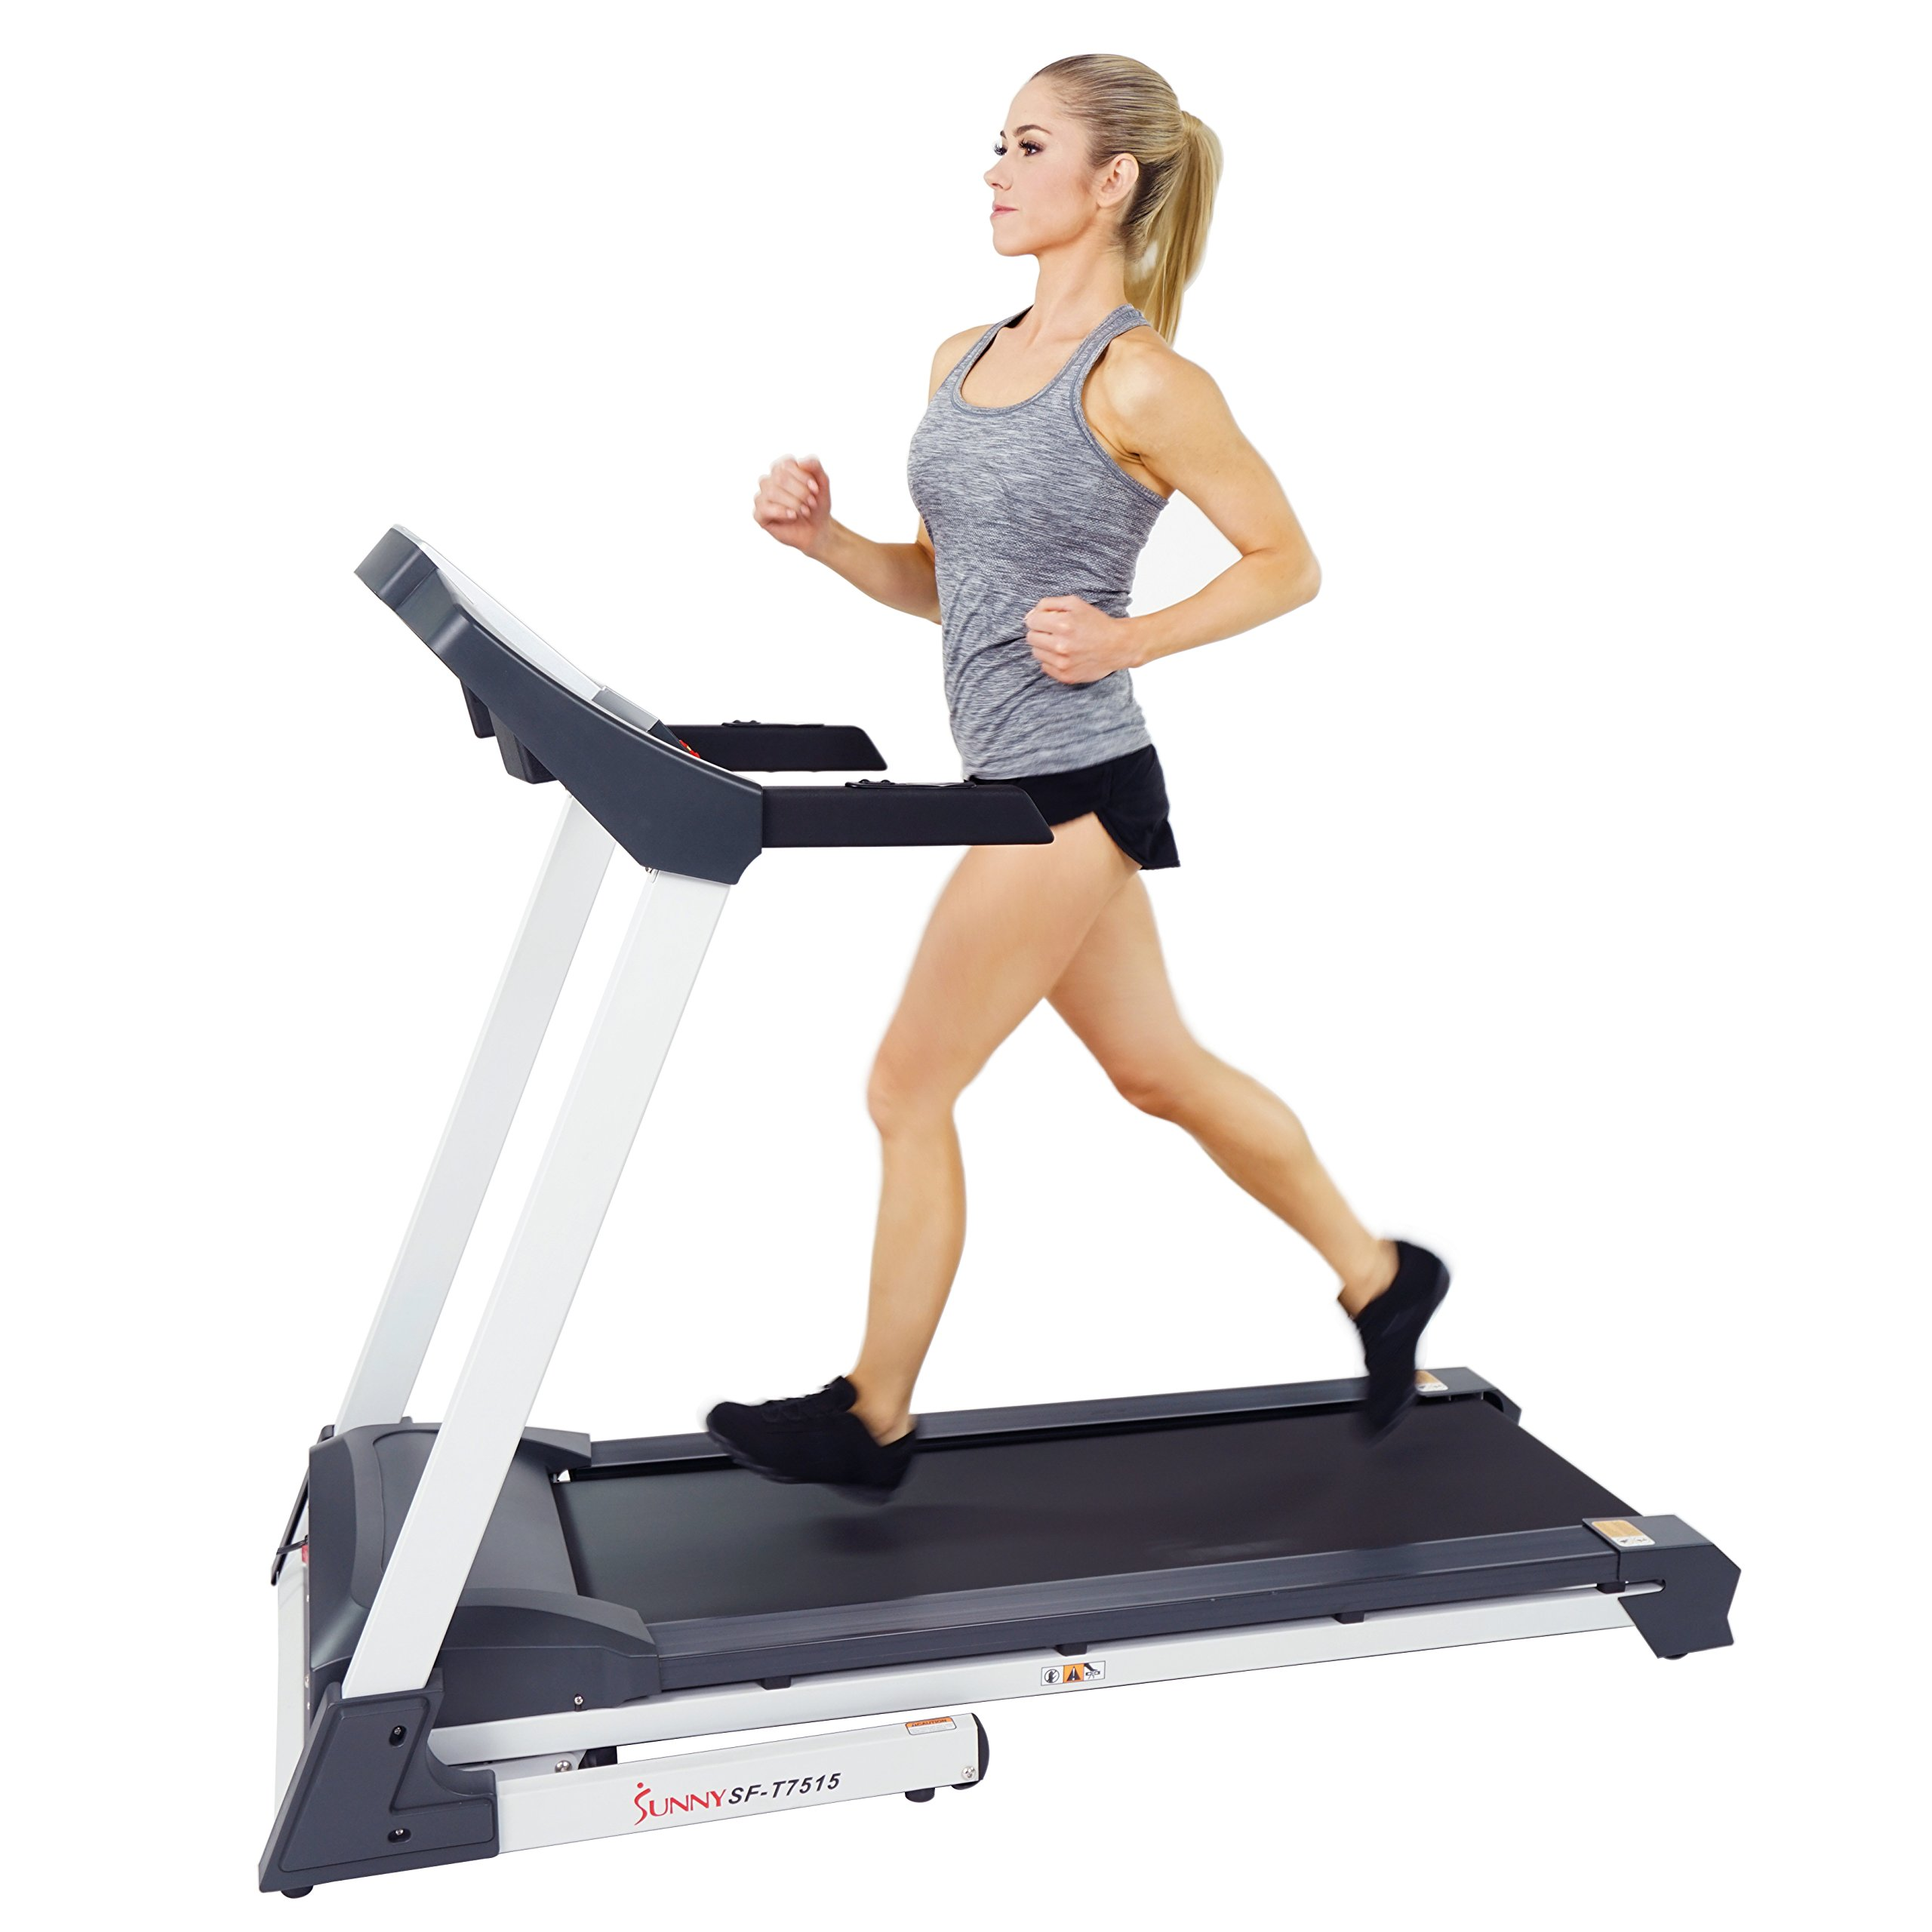 Sunny Health & Fitness SF-T7515 Smart Treadmill with Auto Incline, Sound System, Bluetooth and Phone Function by Sunny Health & Fitness